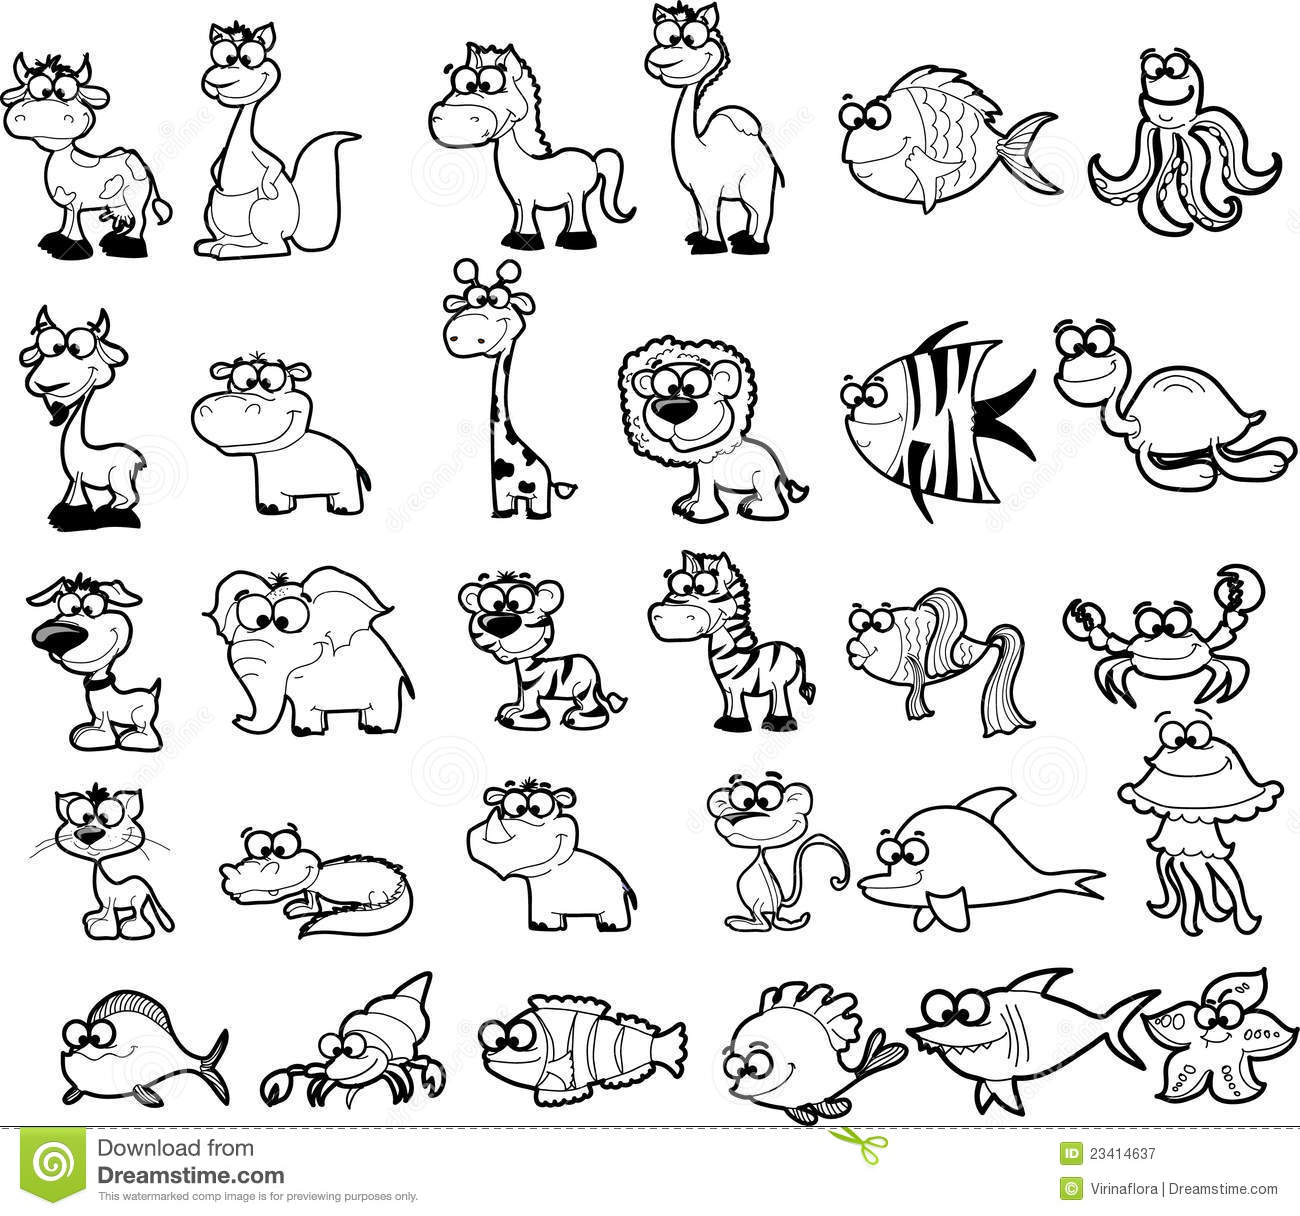 Big Set Of Black And White Cartoon Vector Royalty Free Stock Photography Image 23414637